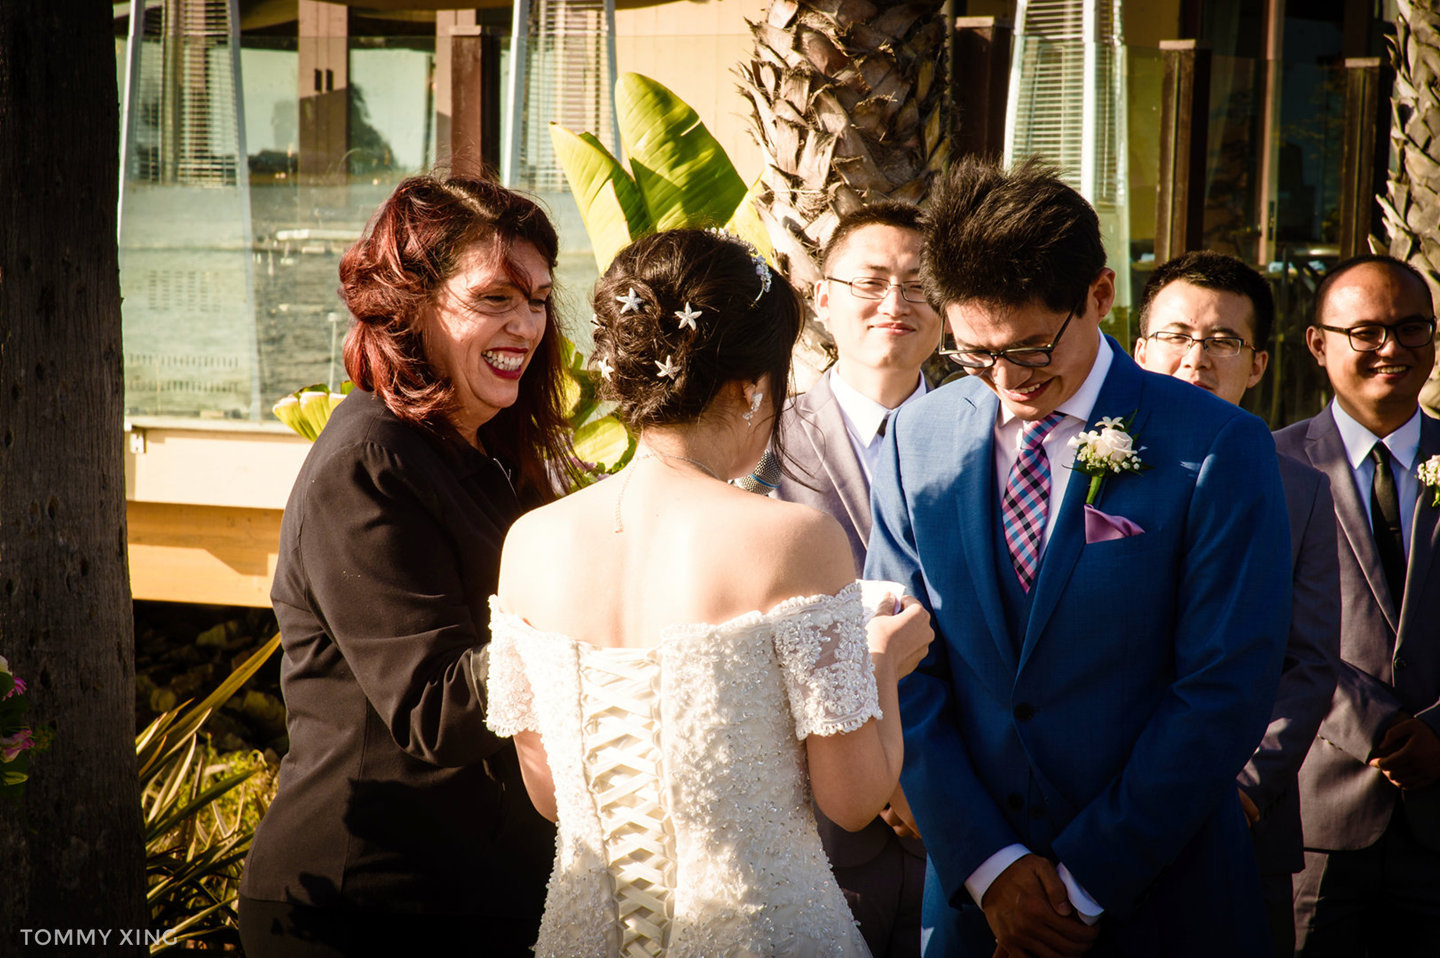 Paradise Point Resort Wedding Xiaolu & Bin San Diego 圣地亚哥婚礼摄影跟拍 Tommy Xing Photography 洛杉矶婚礼婚纱照摄影师 143.jpg